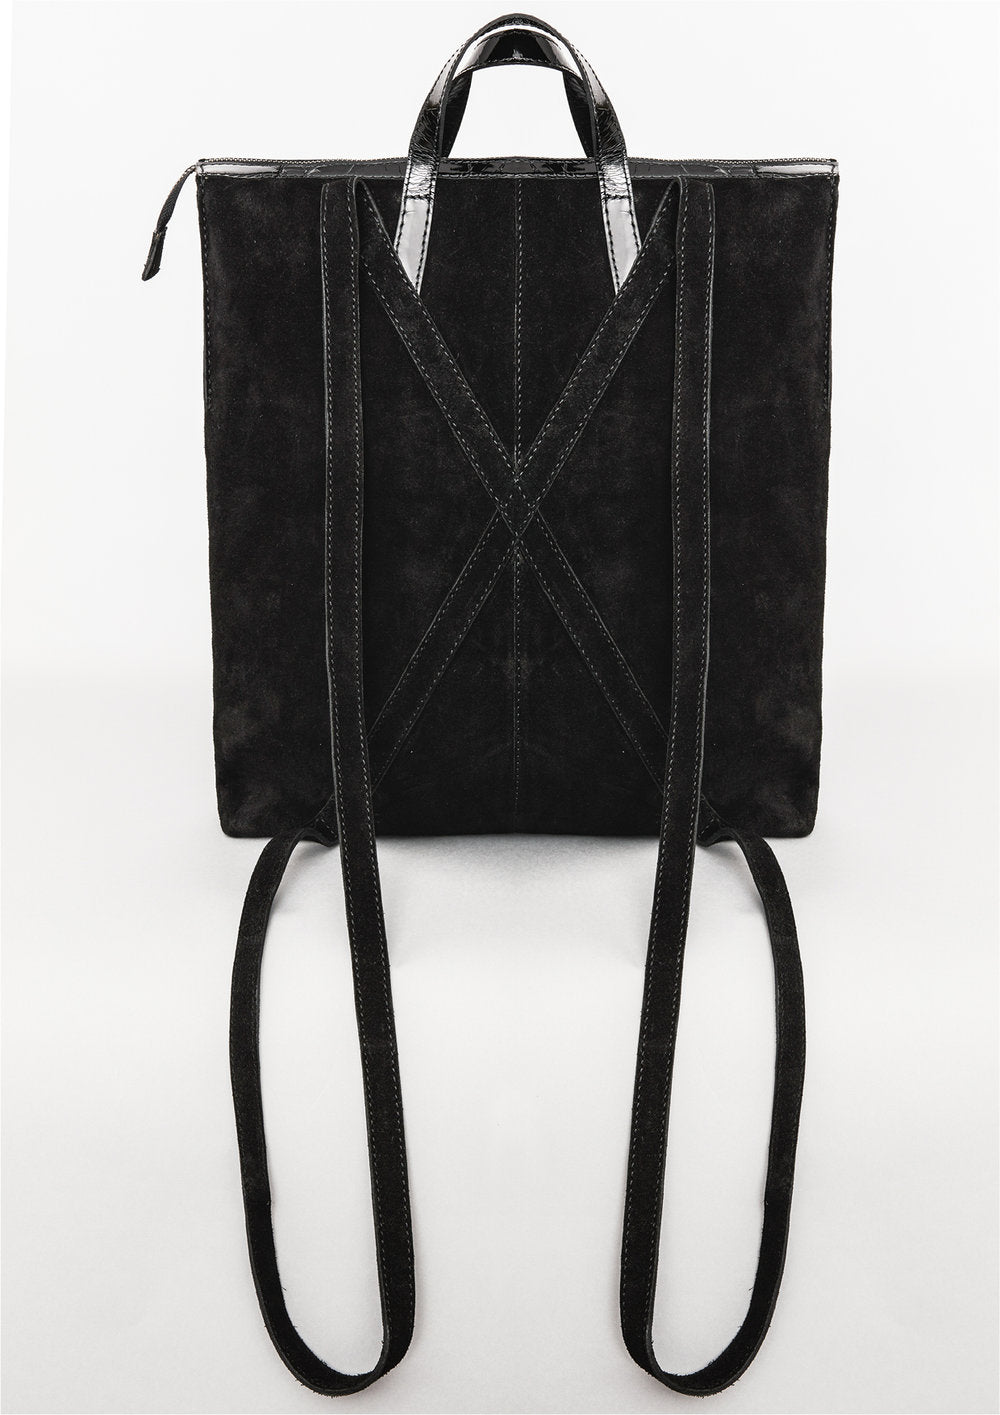 BACKPACK BLACK - BERENIK